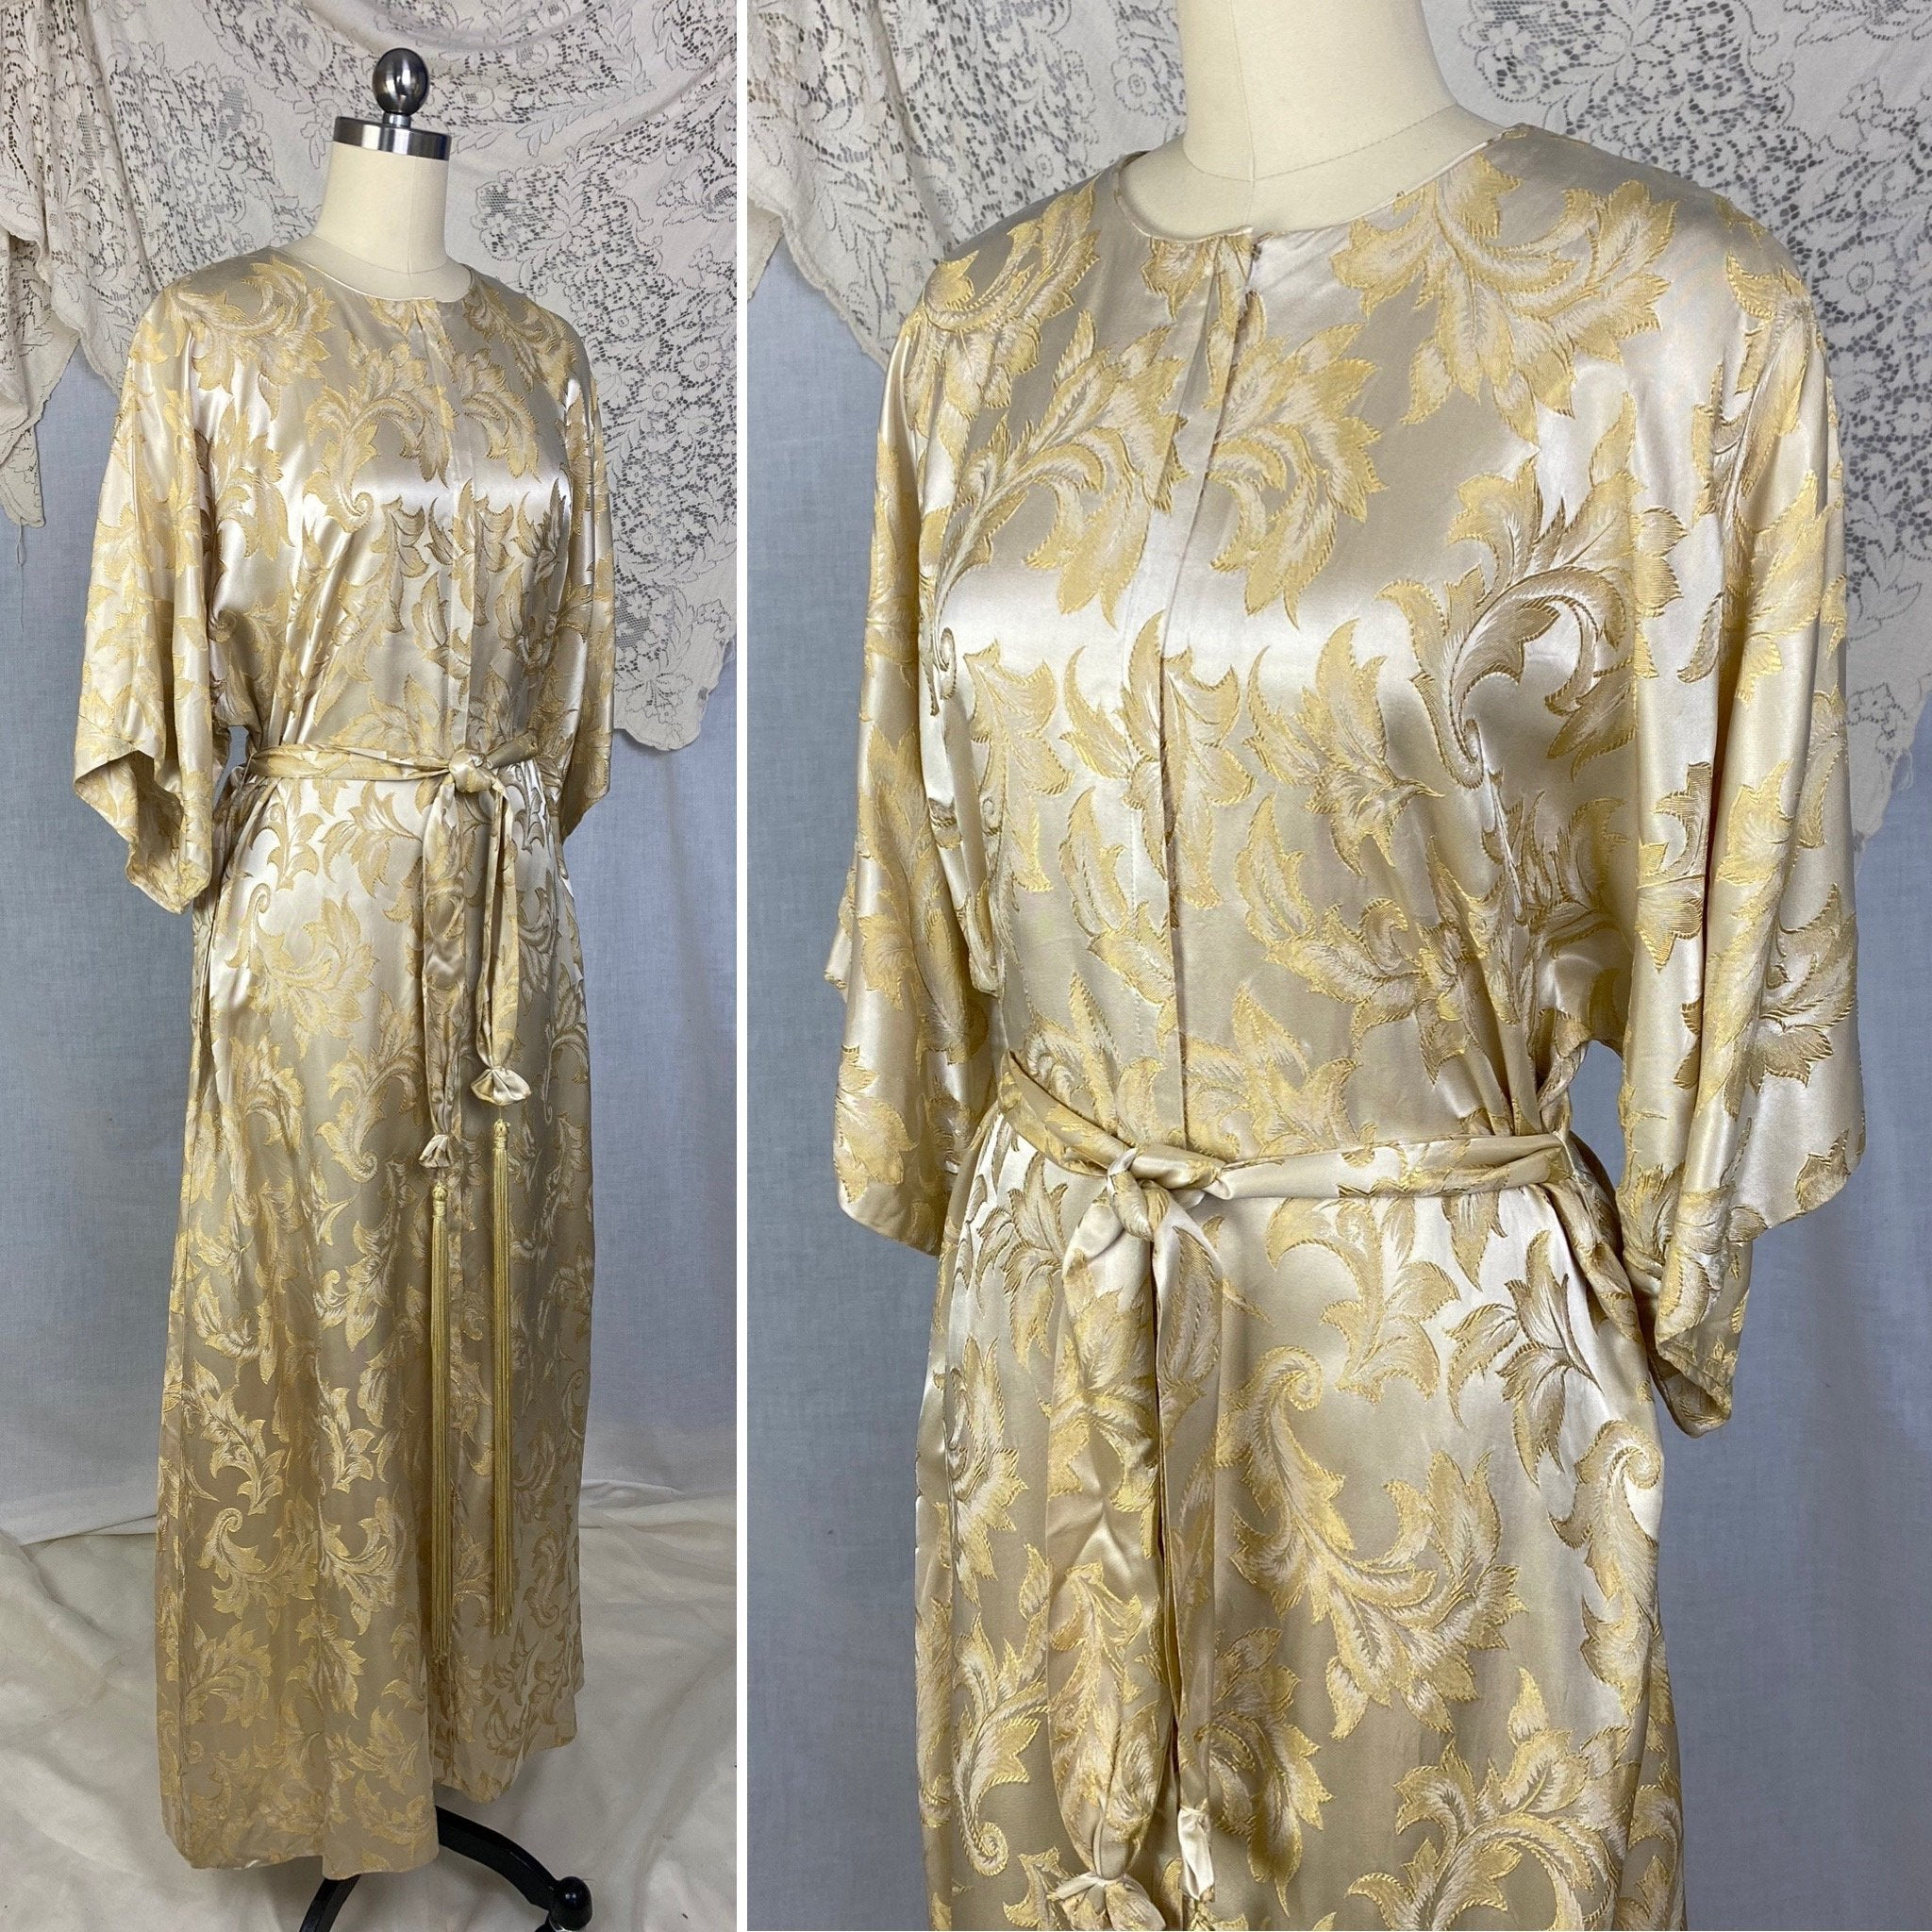 Vintage 1960's Hostess Dress | Champagne Rayon Satin Damask with Fringe Sash Tie | Size S, M, LG | Peer - Daggers & Dames